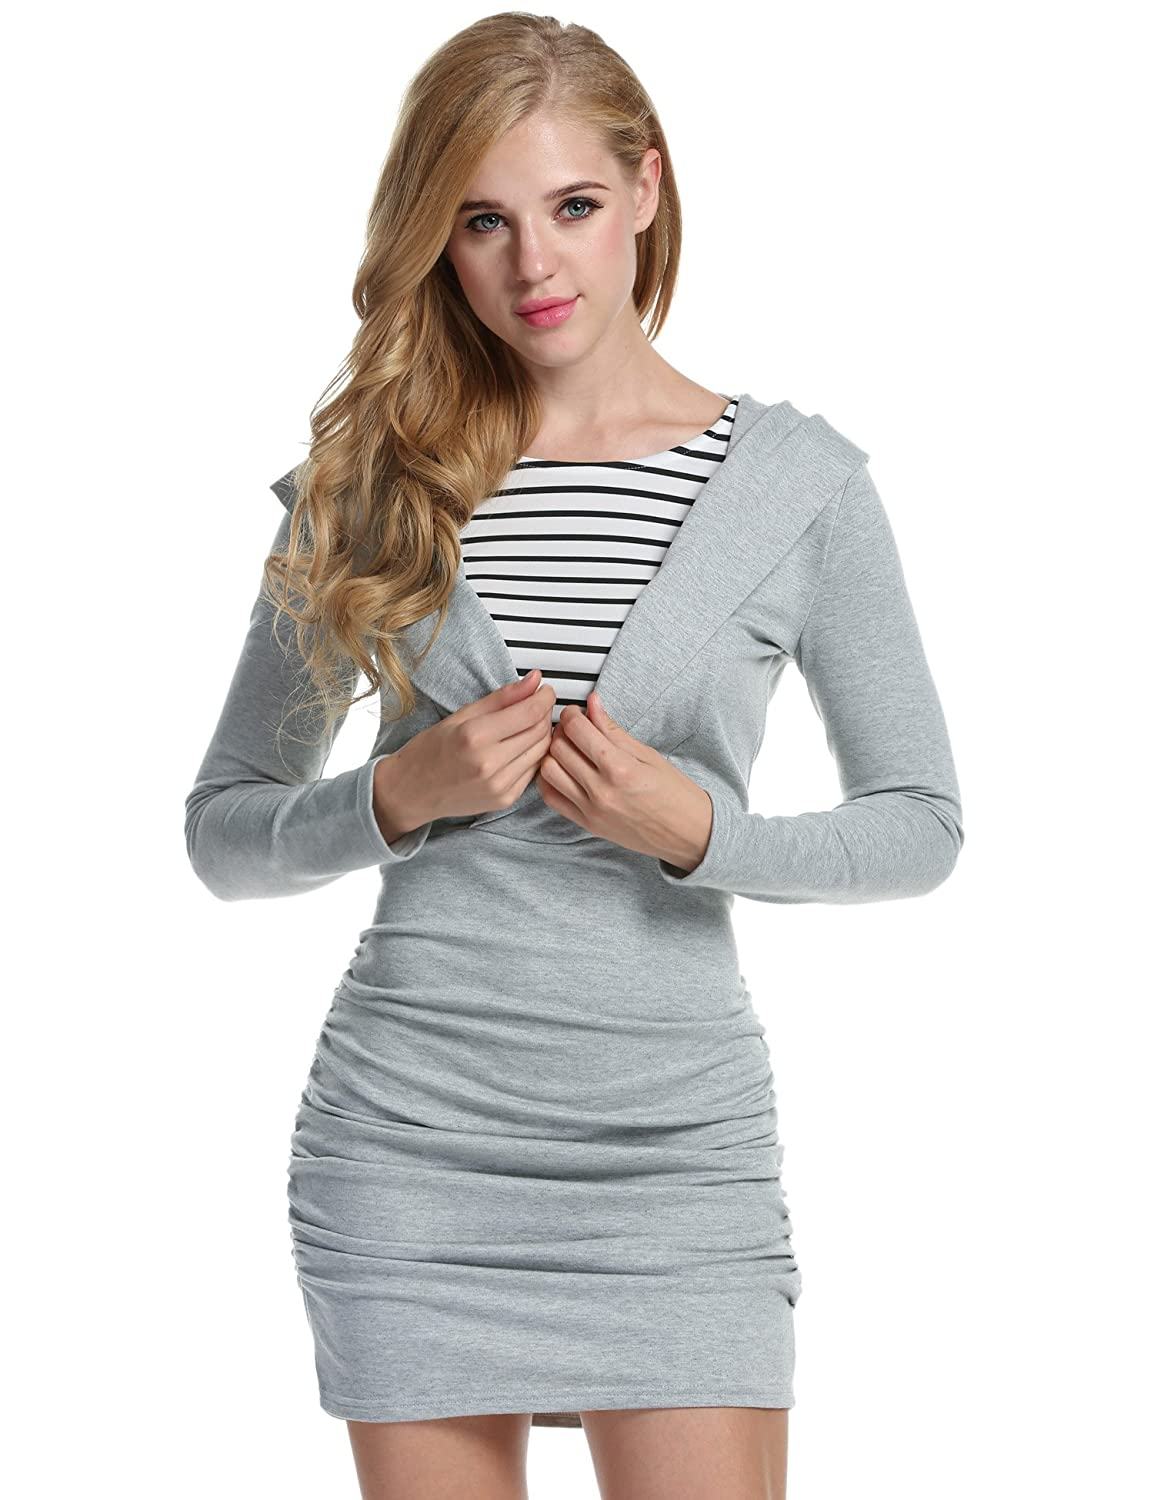 ACEVOG Women Long Sleeve 2 In 1 Tunic Club Dress Sweatshirt Hoodies Dress